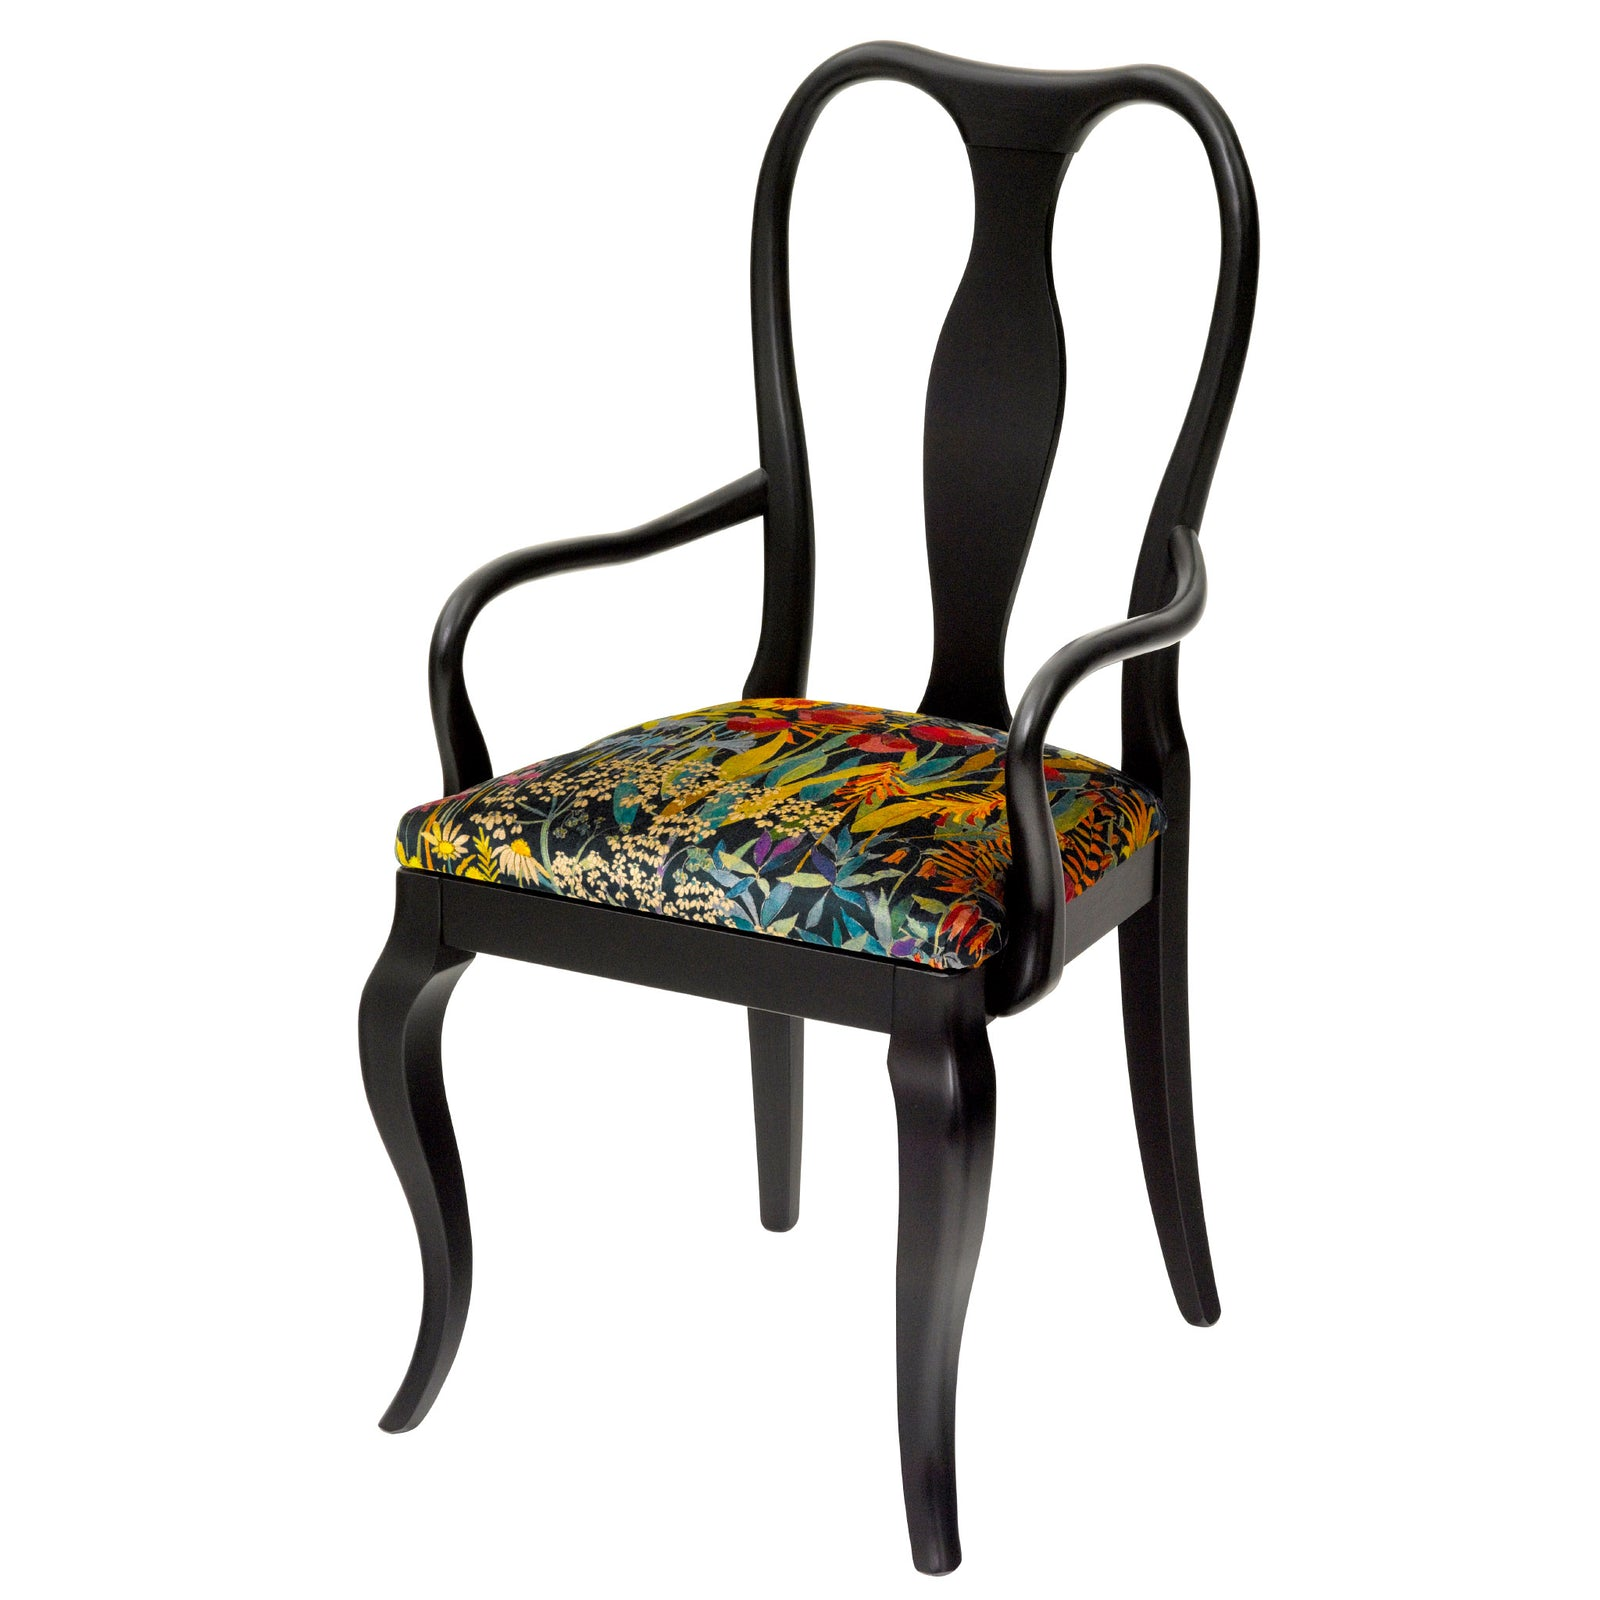 Designer Dining Chair in Black with an upholstered seat in Liberty London Velvet